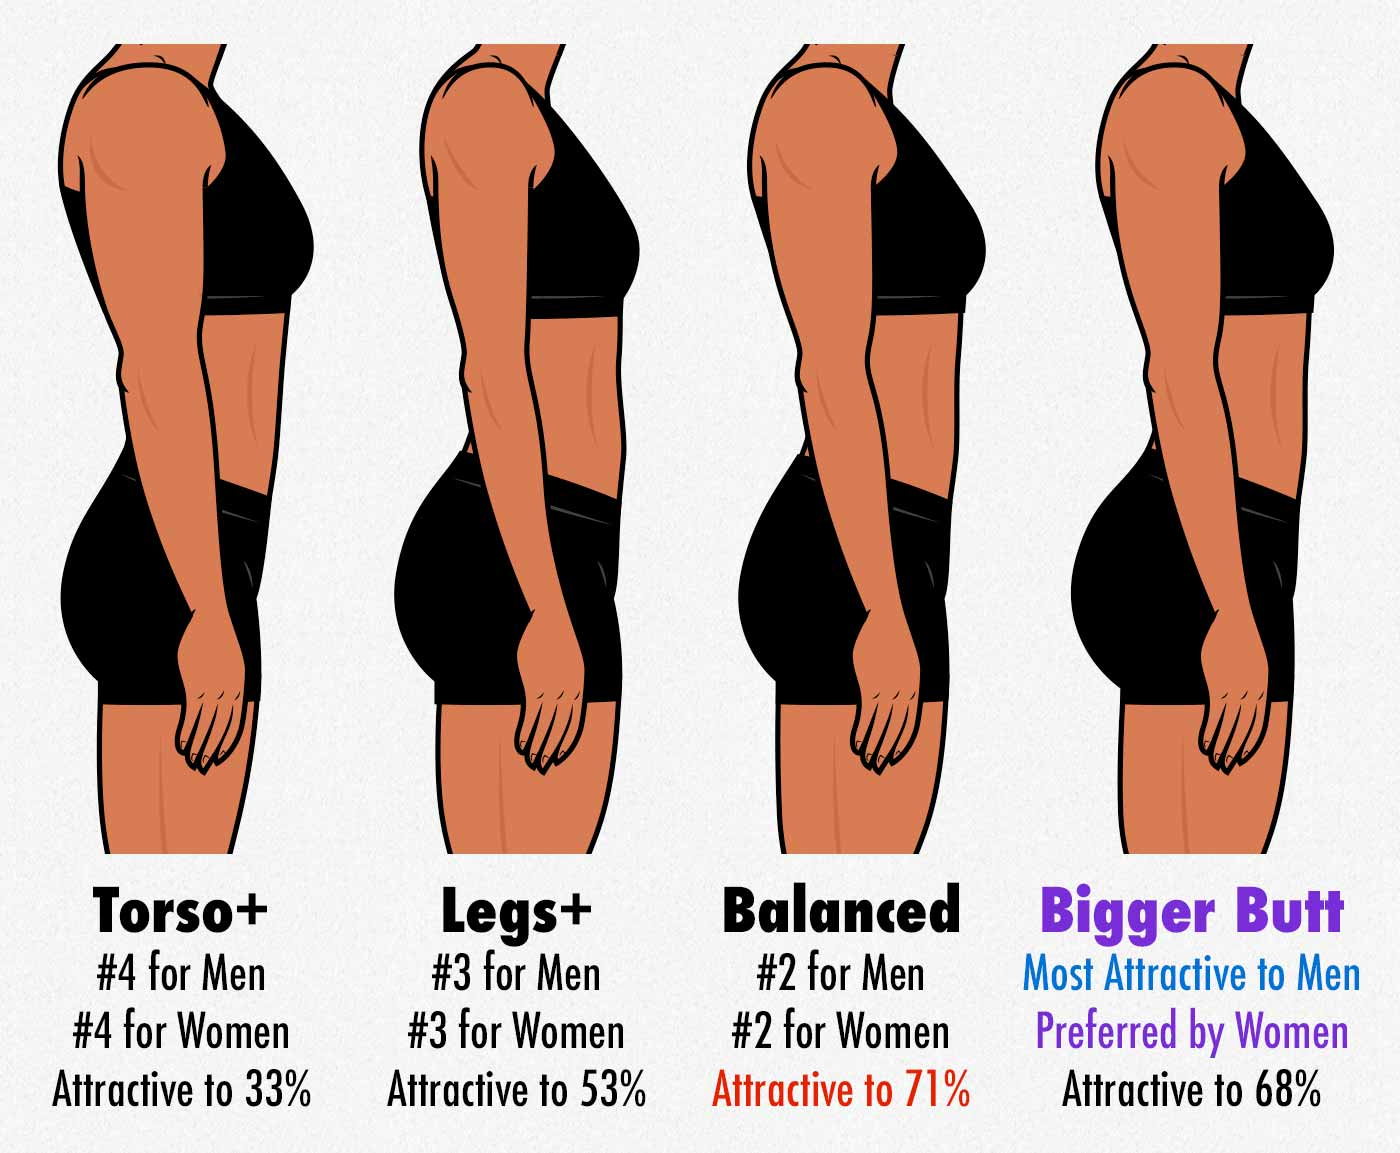 Survey results showing that men prefer women who are strong everywhere but have bigger glutes/butts.